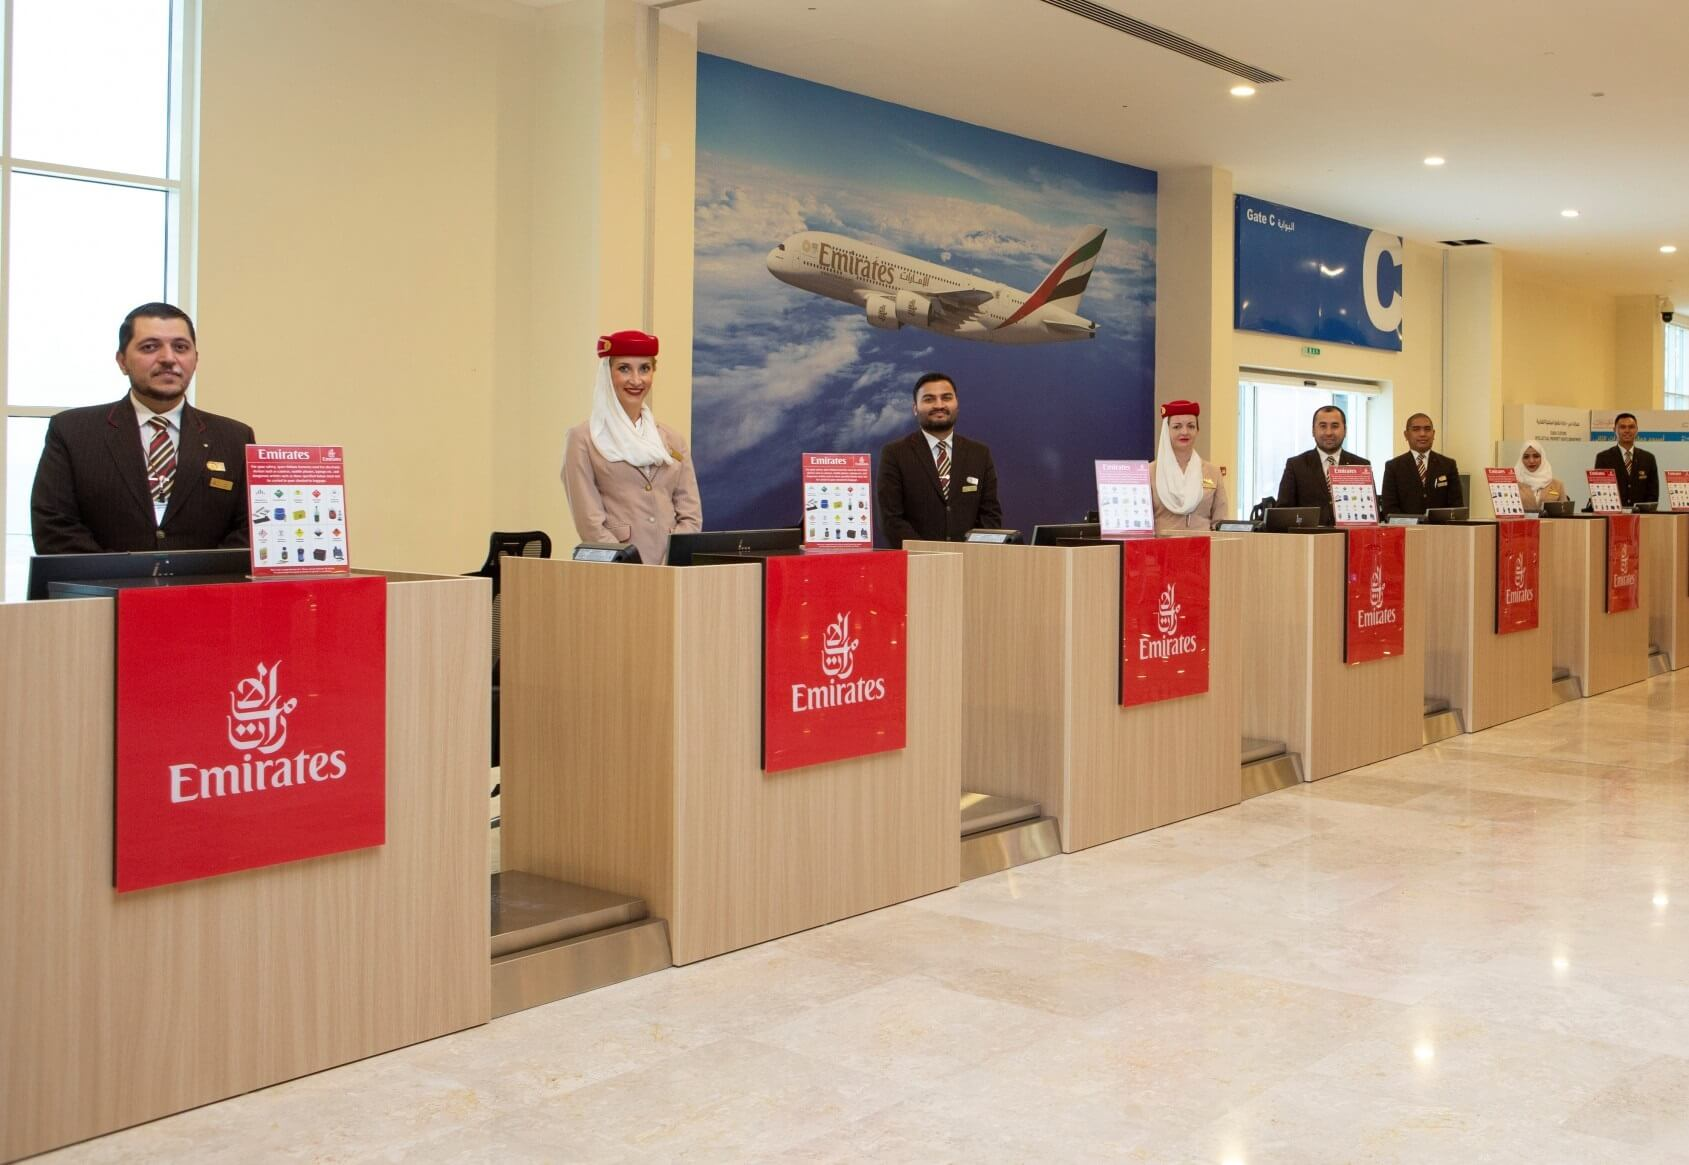 Emirates' new remote check-in terminal provides seamless connections for cruise passengers